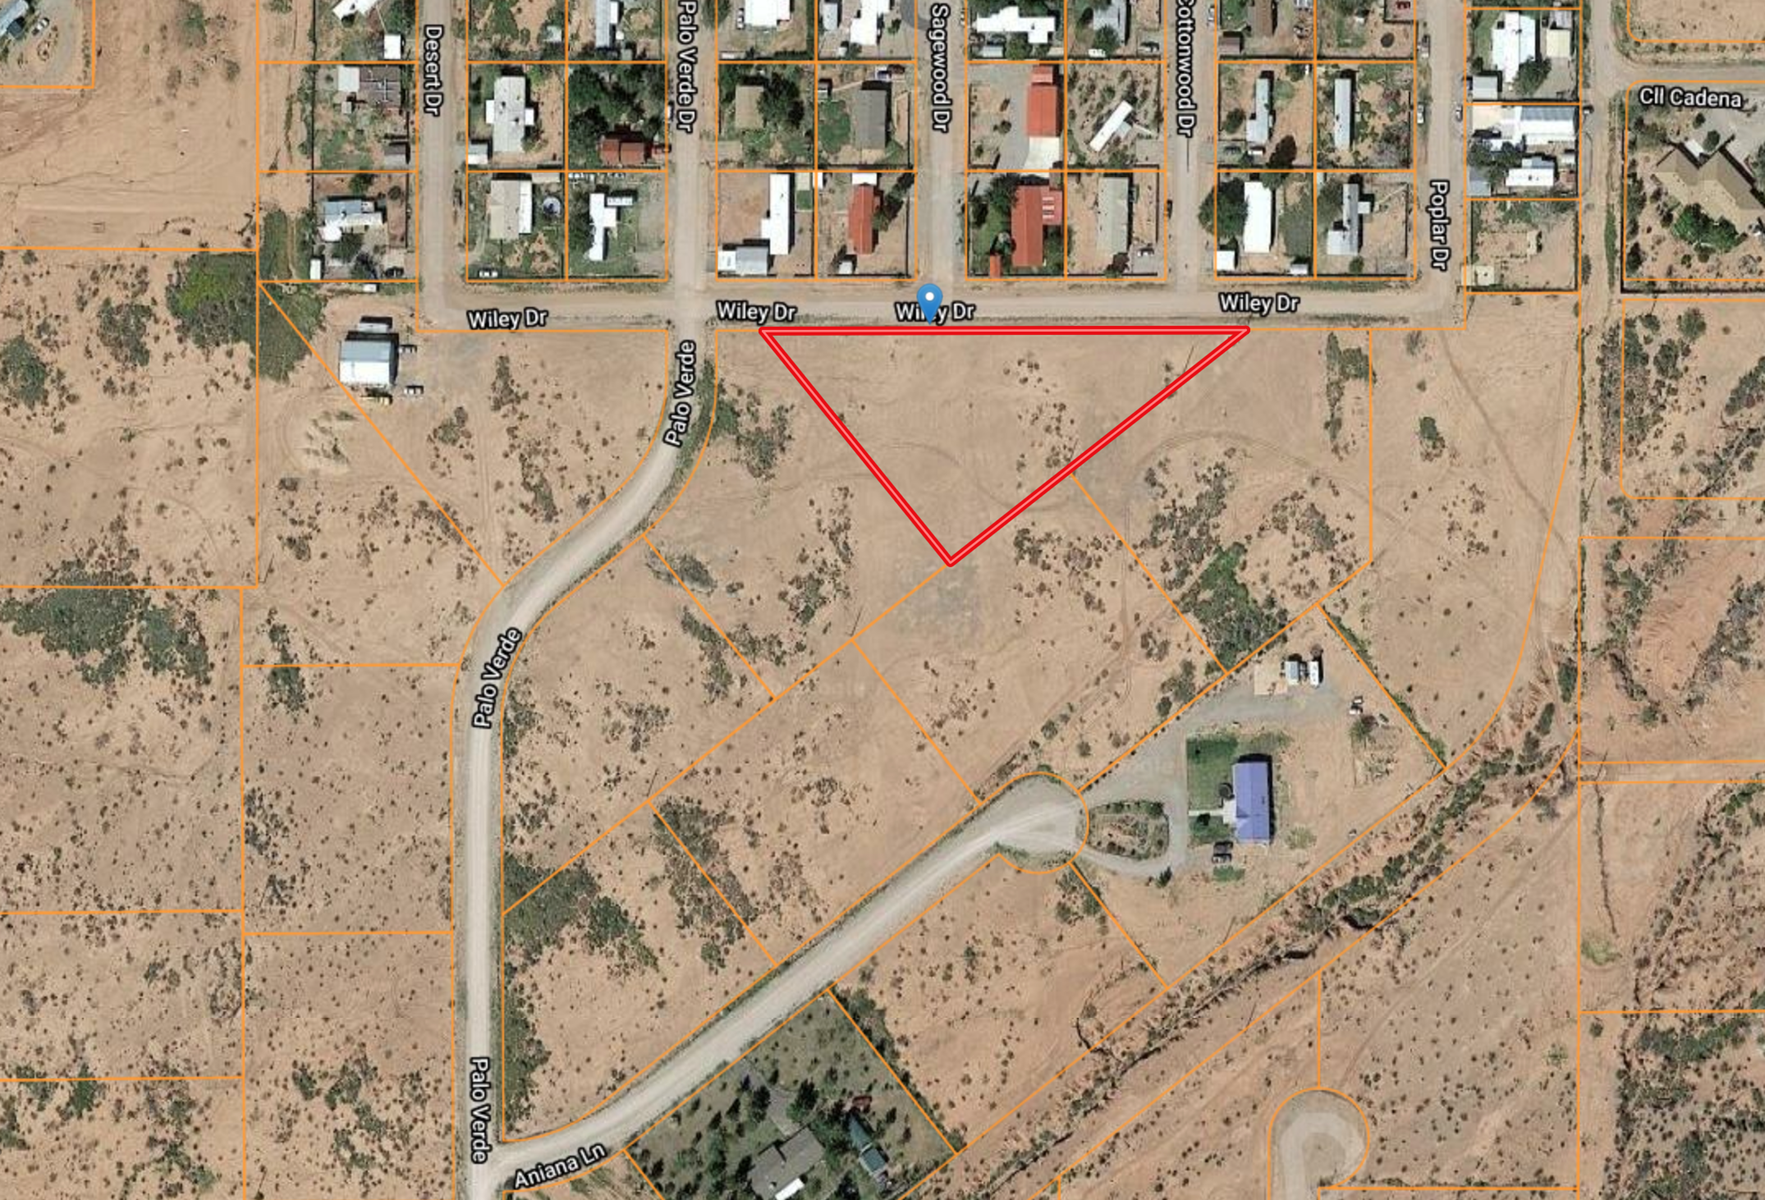 Residential Lot in La Luz NM near Holloman AFB